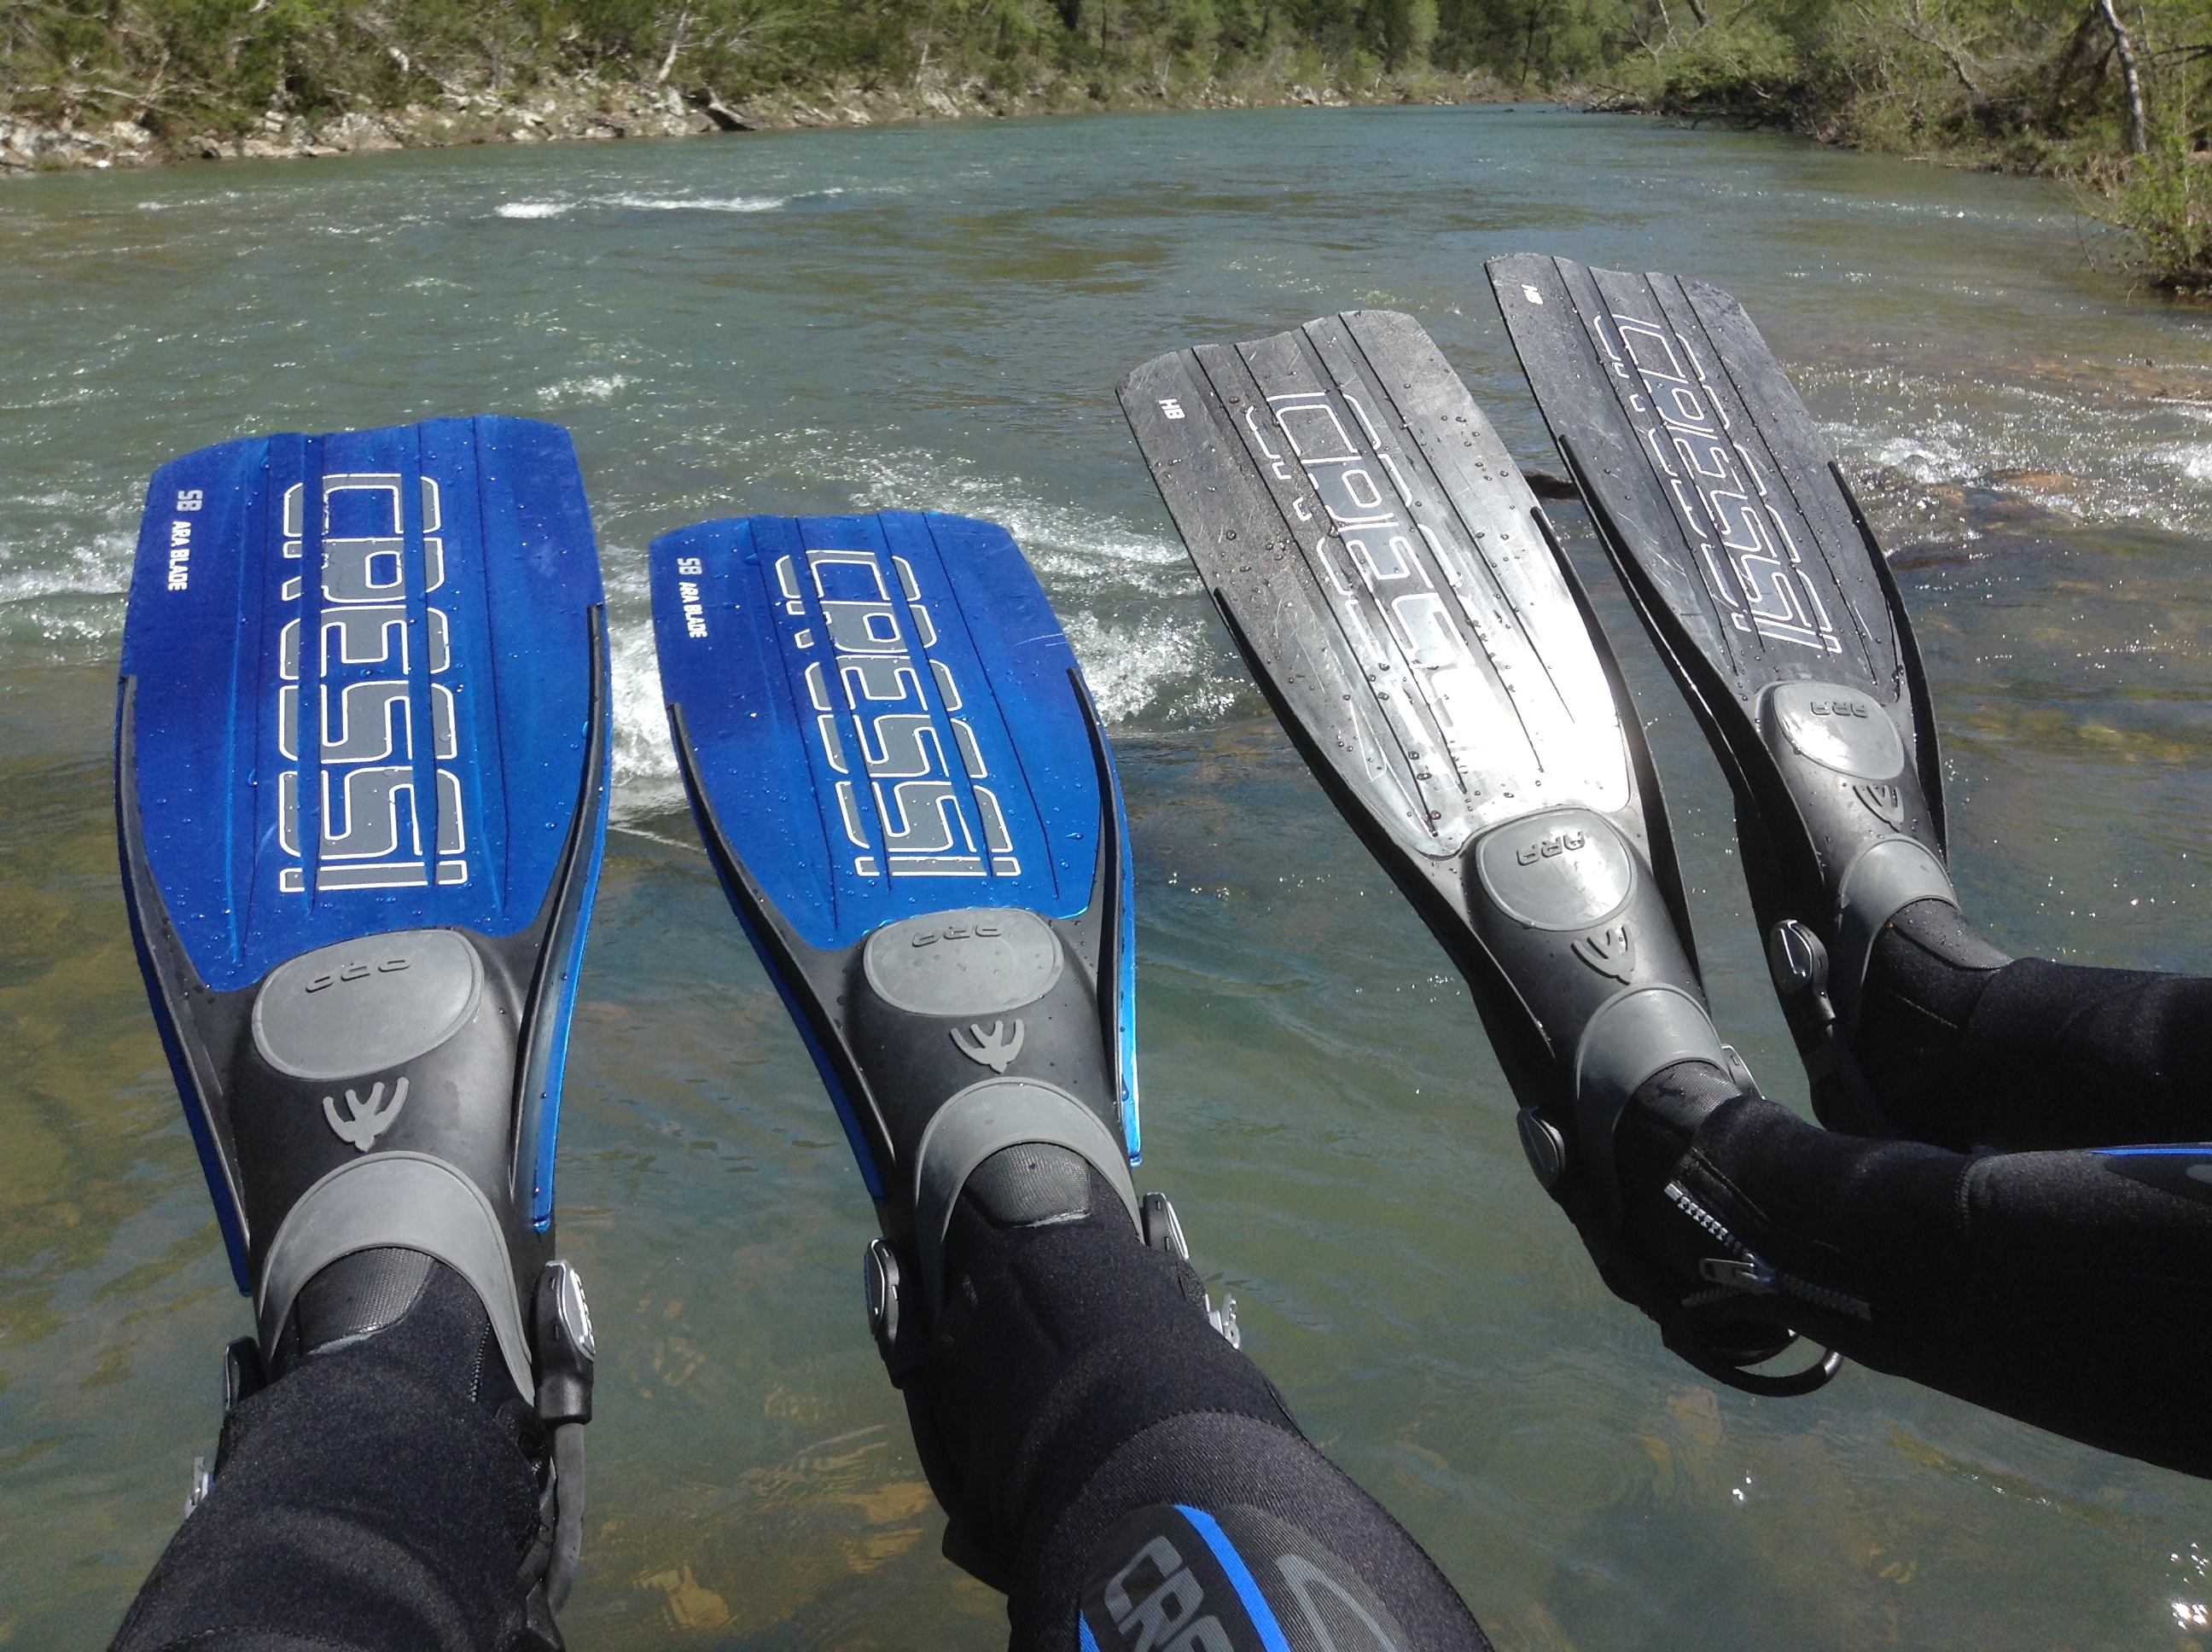 Camp Arkansas, Christine West, Adam Maire, Dive and Drive, River, #GetYourFinsOn, Cressi Fins